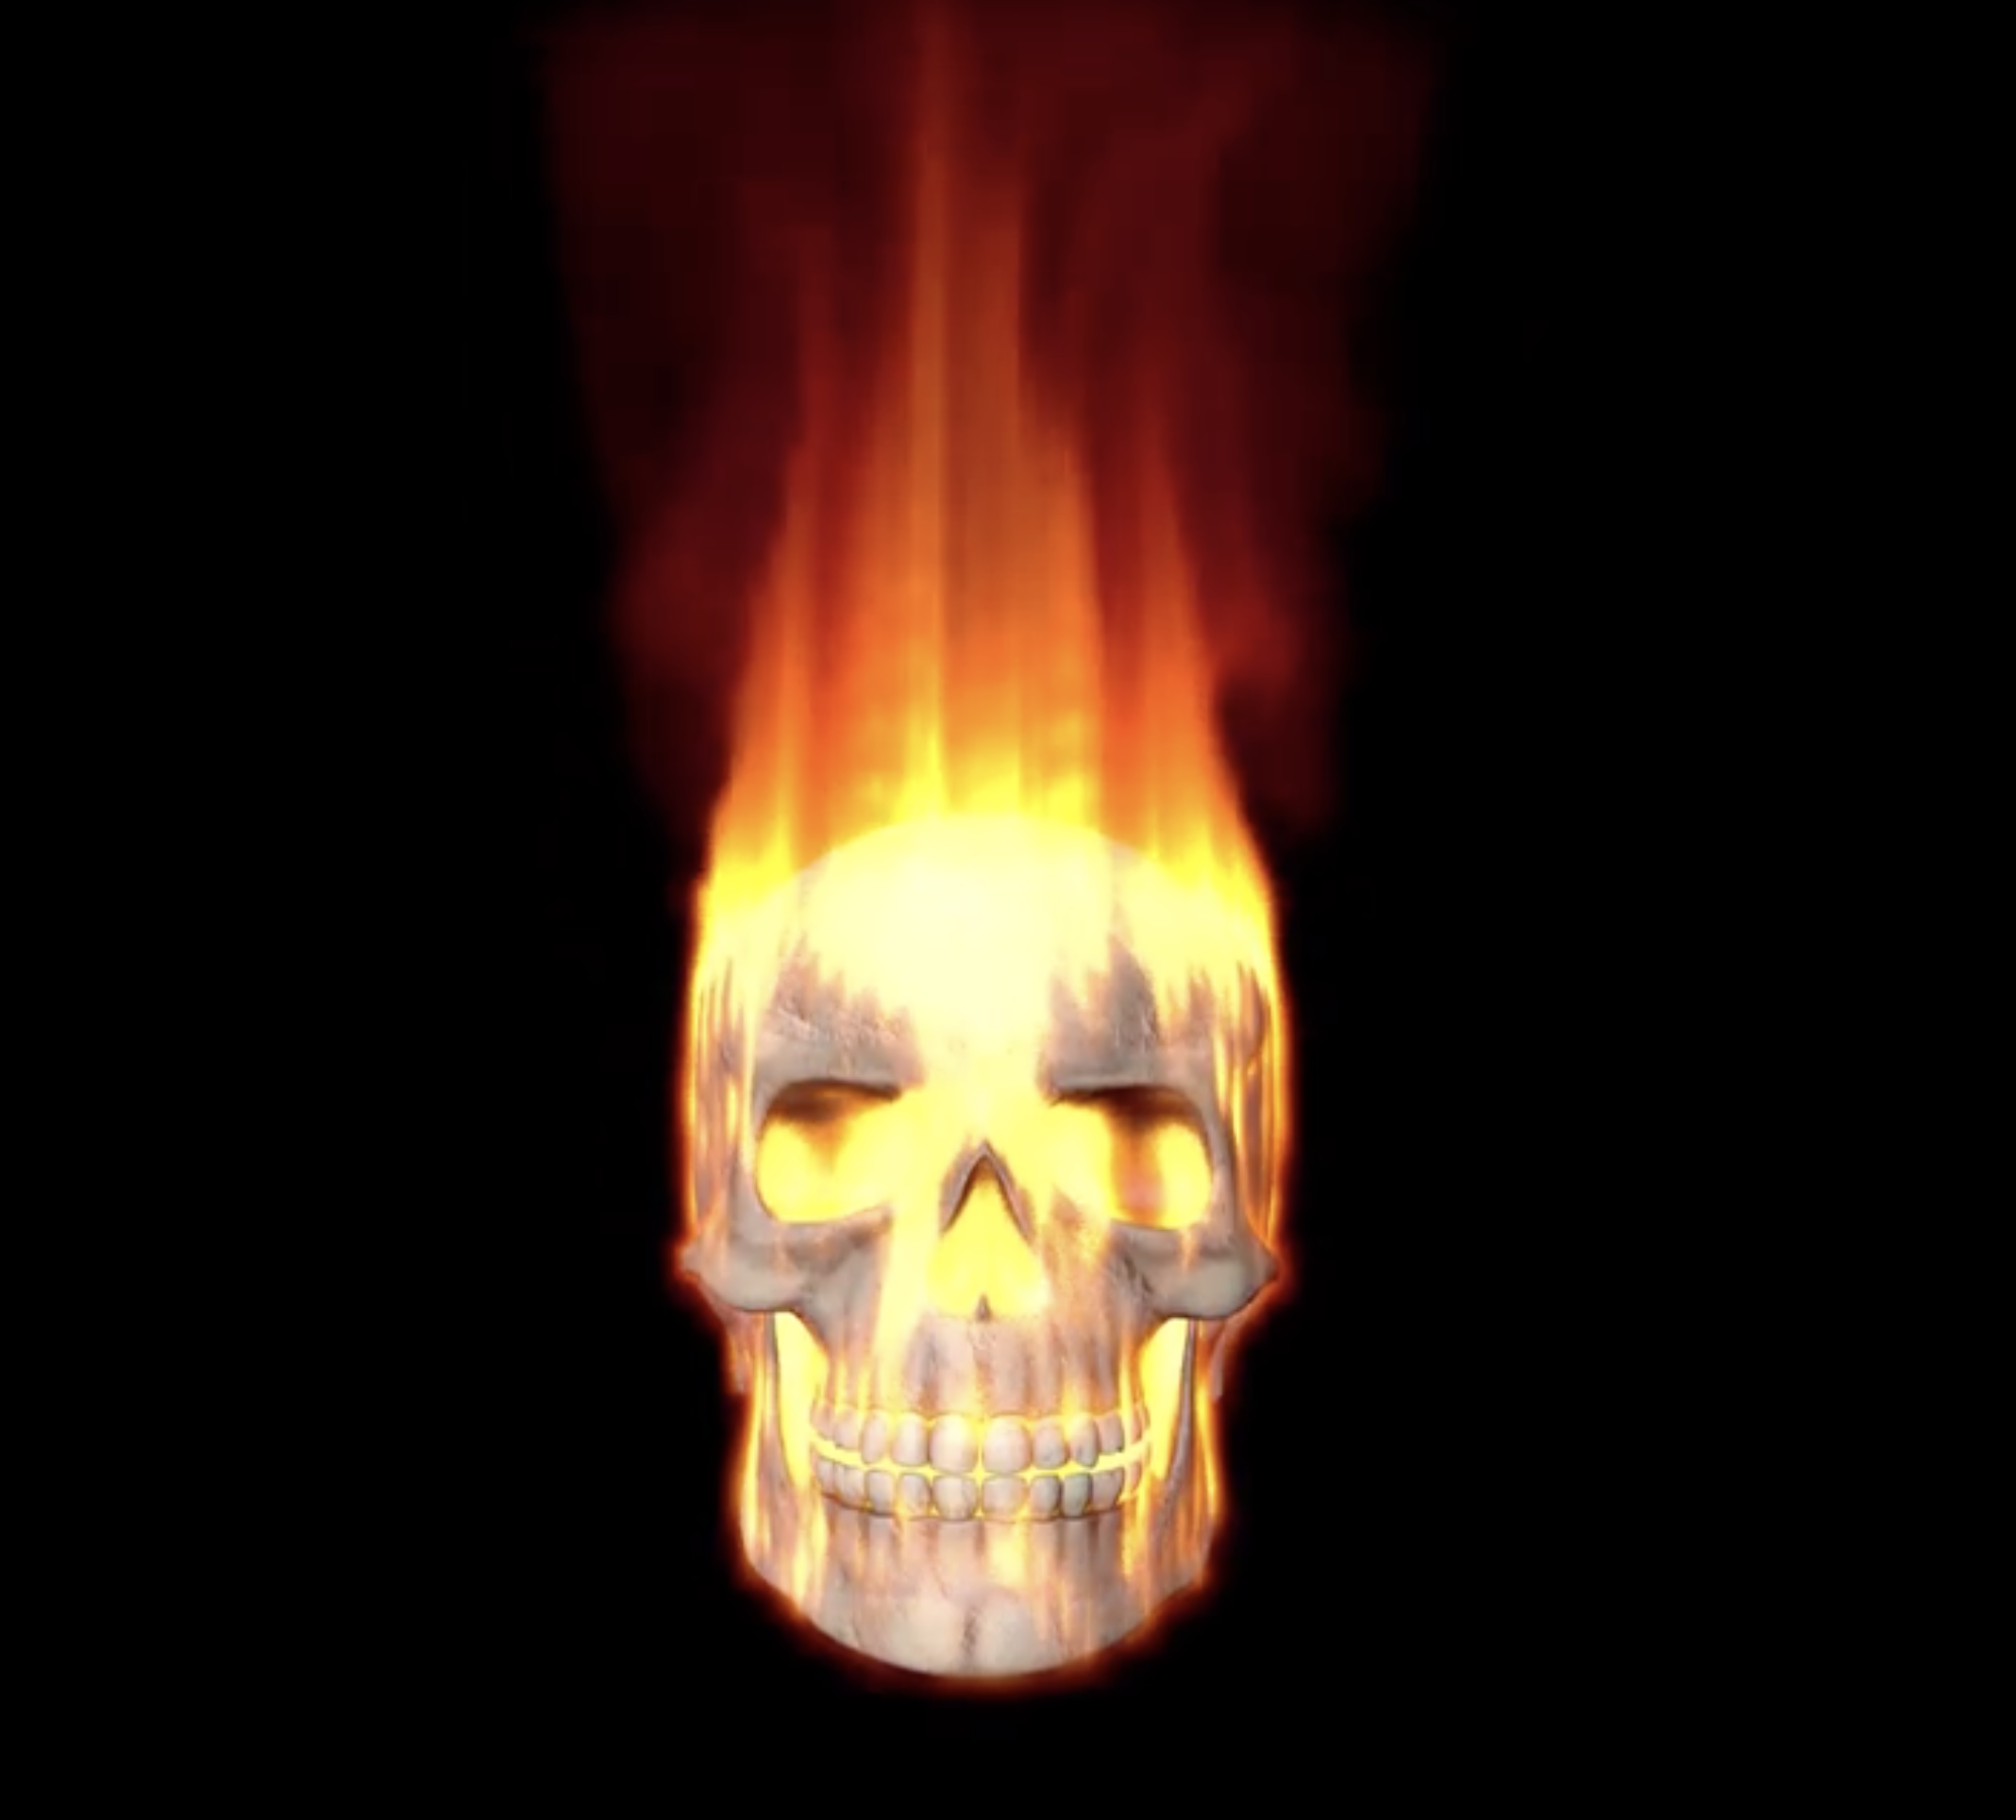 Hologram 3d test render Cinema 4d Flames Skull